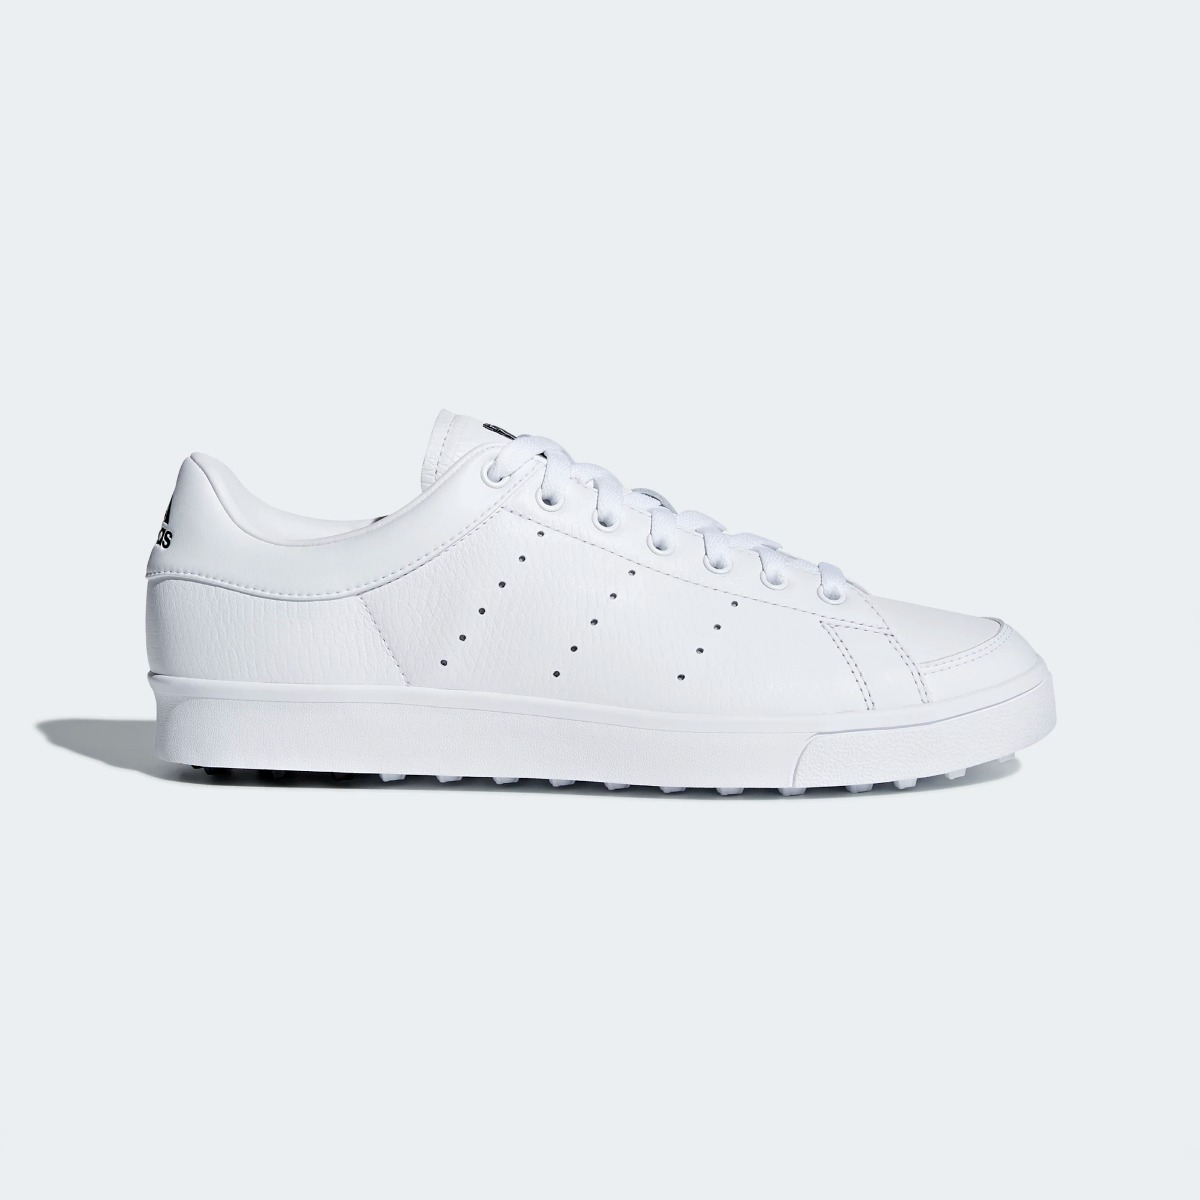 Zapatillas adidas Golf Adicross Classic Blanca Golf Center